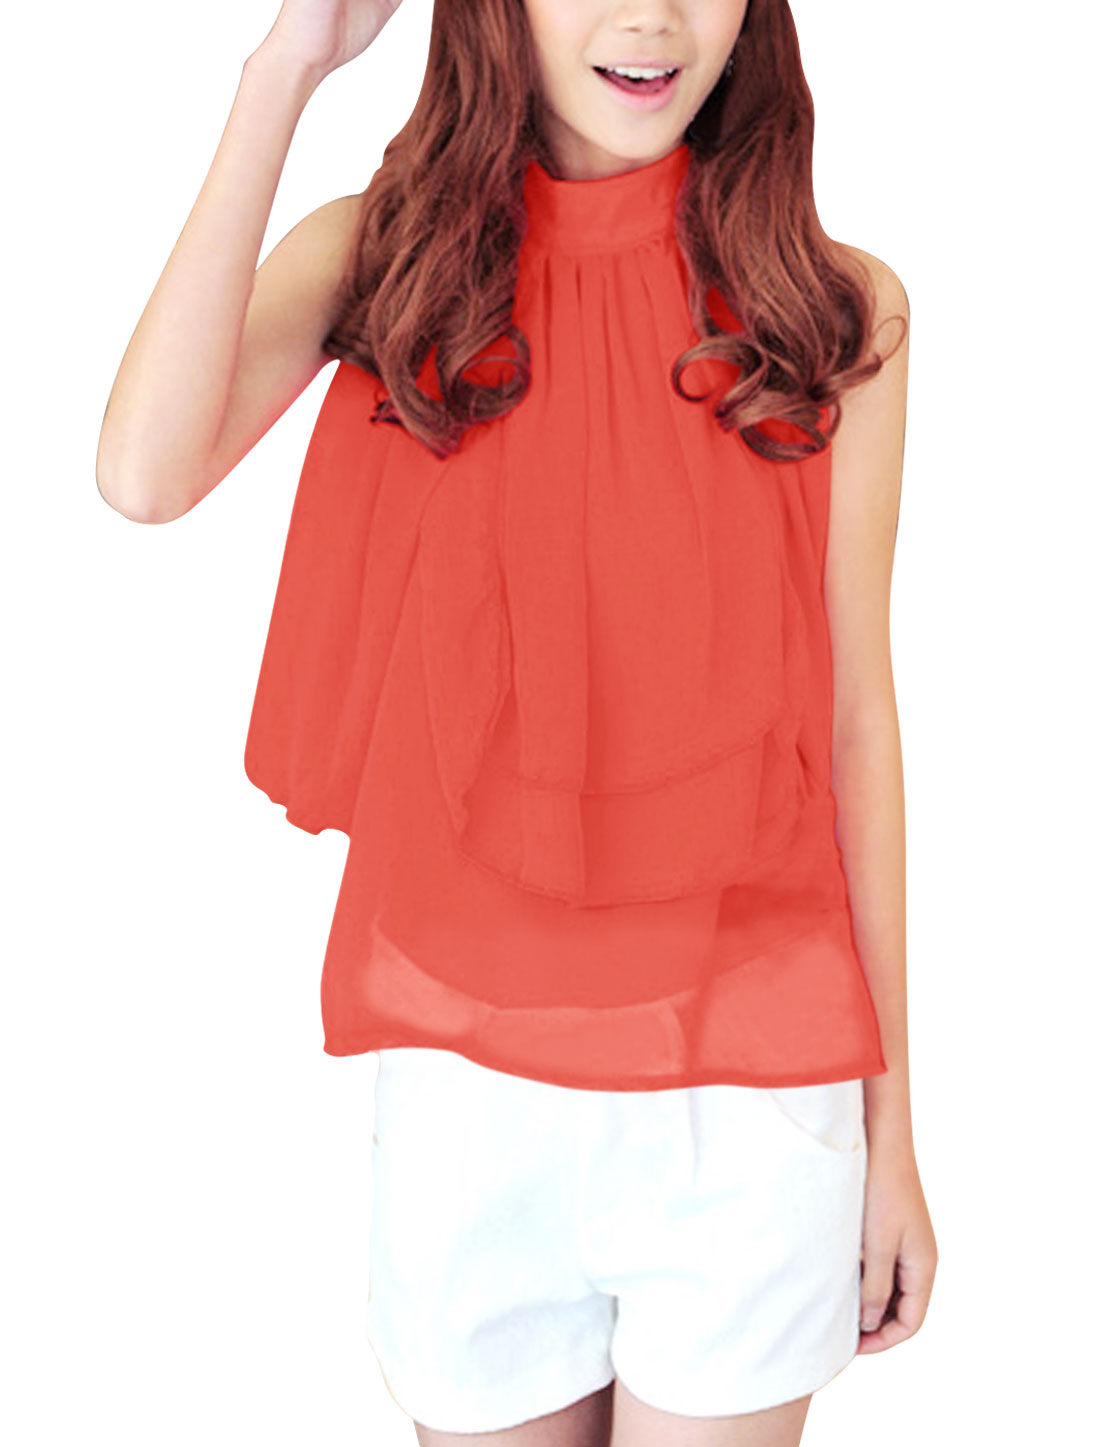 Women Chic Stand Collar Sleeveless Panel Design Watermelon Red Top L